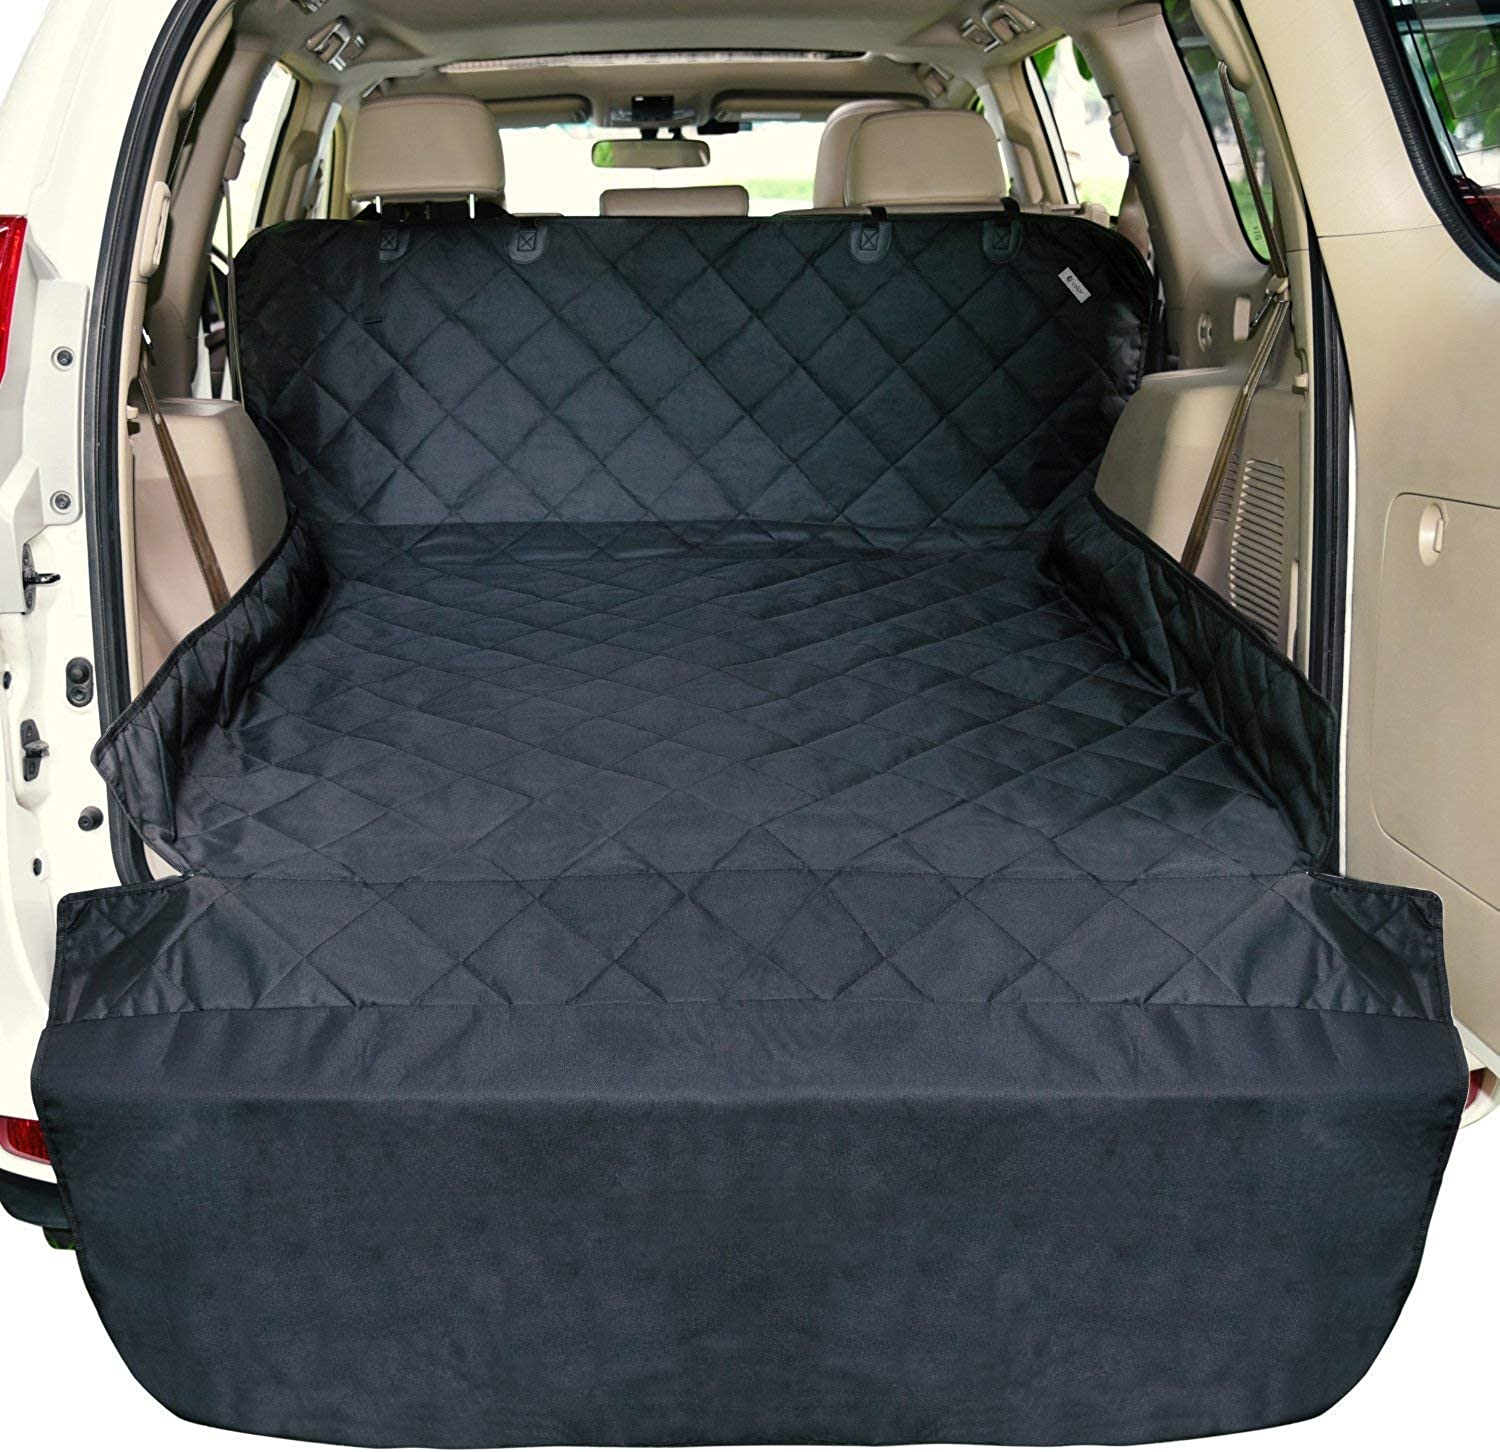 Cargo Liner for SUV's and Cars,Waterproof Material,Non Slip Backing,with Side Walls Predectors,Extra Bumper Flap Predector,Large Size  Universal Fit